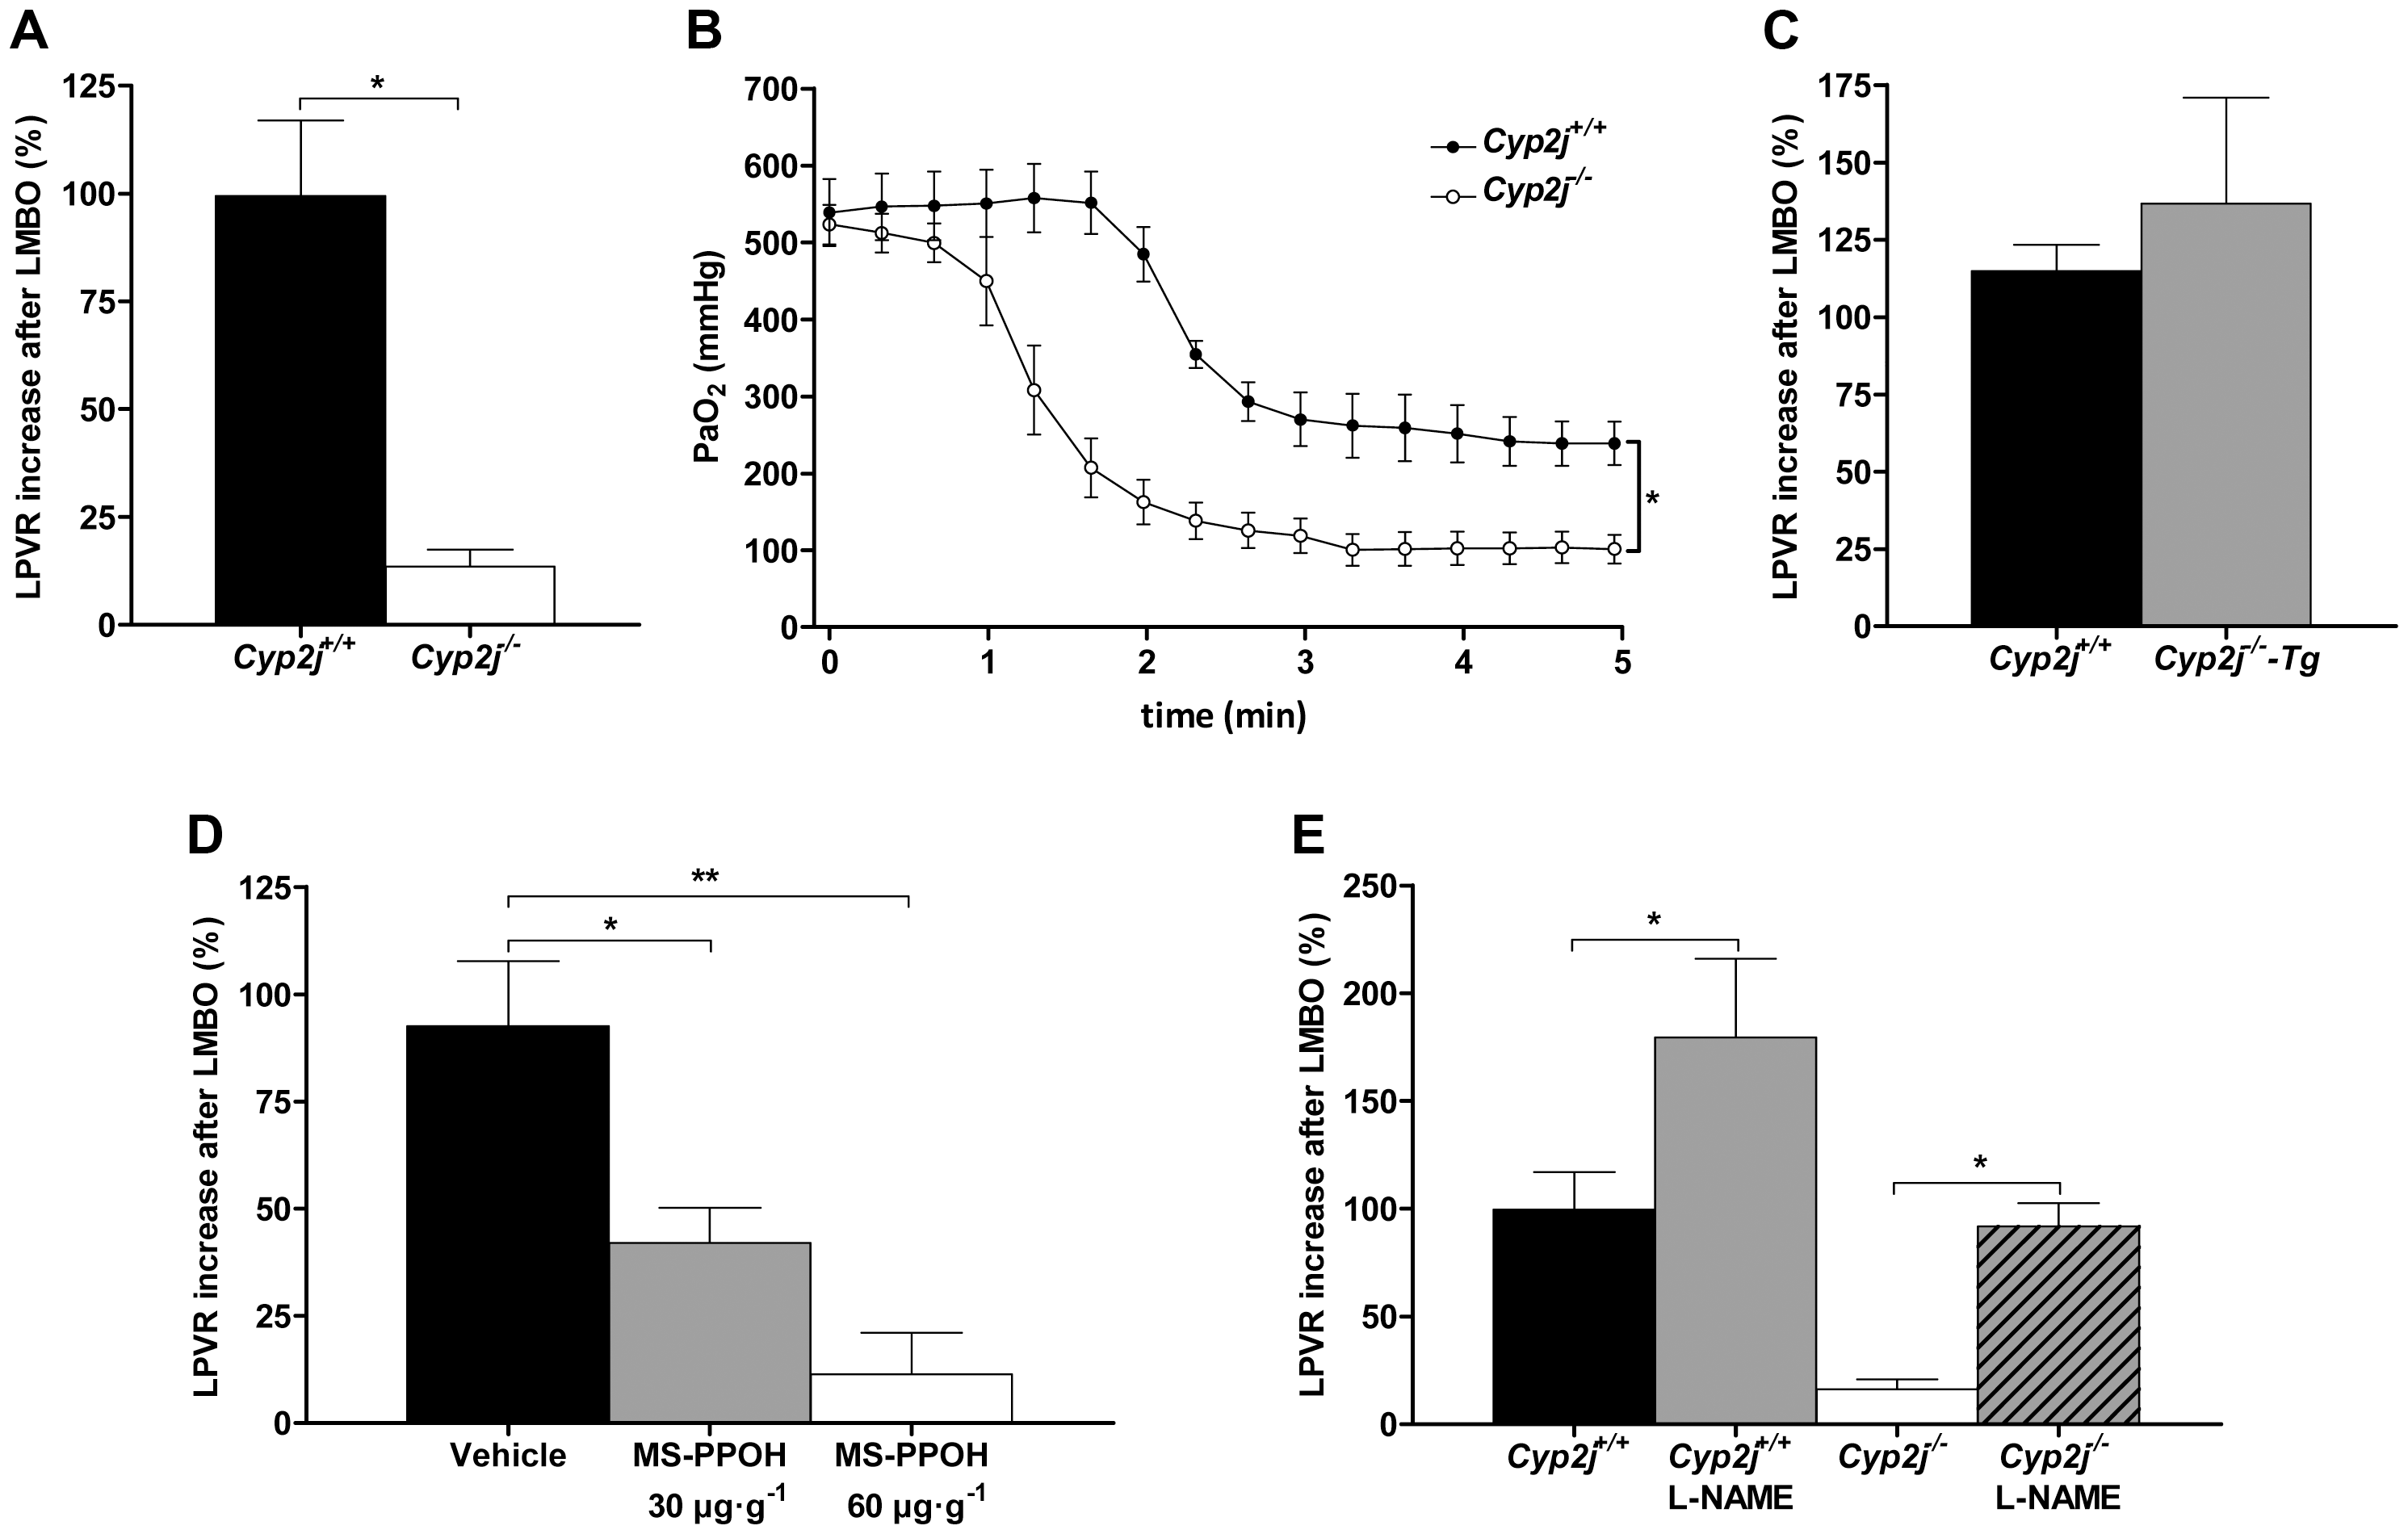 (A) Percent increase in left lung pulmonary vascular resistance (LPVR) in response to left mainstem bronchial occlusion (LMBO) in <i>Cyp2j<sup>+/+</sup></i> and <i>Cyp2j<sup>−/−</sup></i> mice (n = 10 per group).